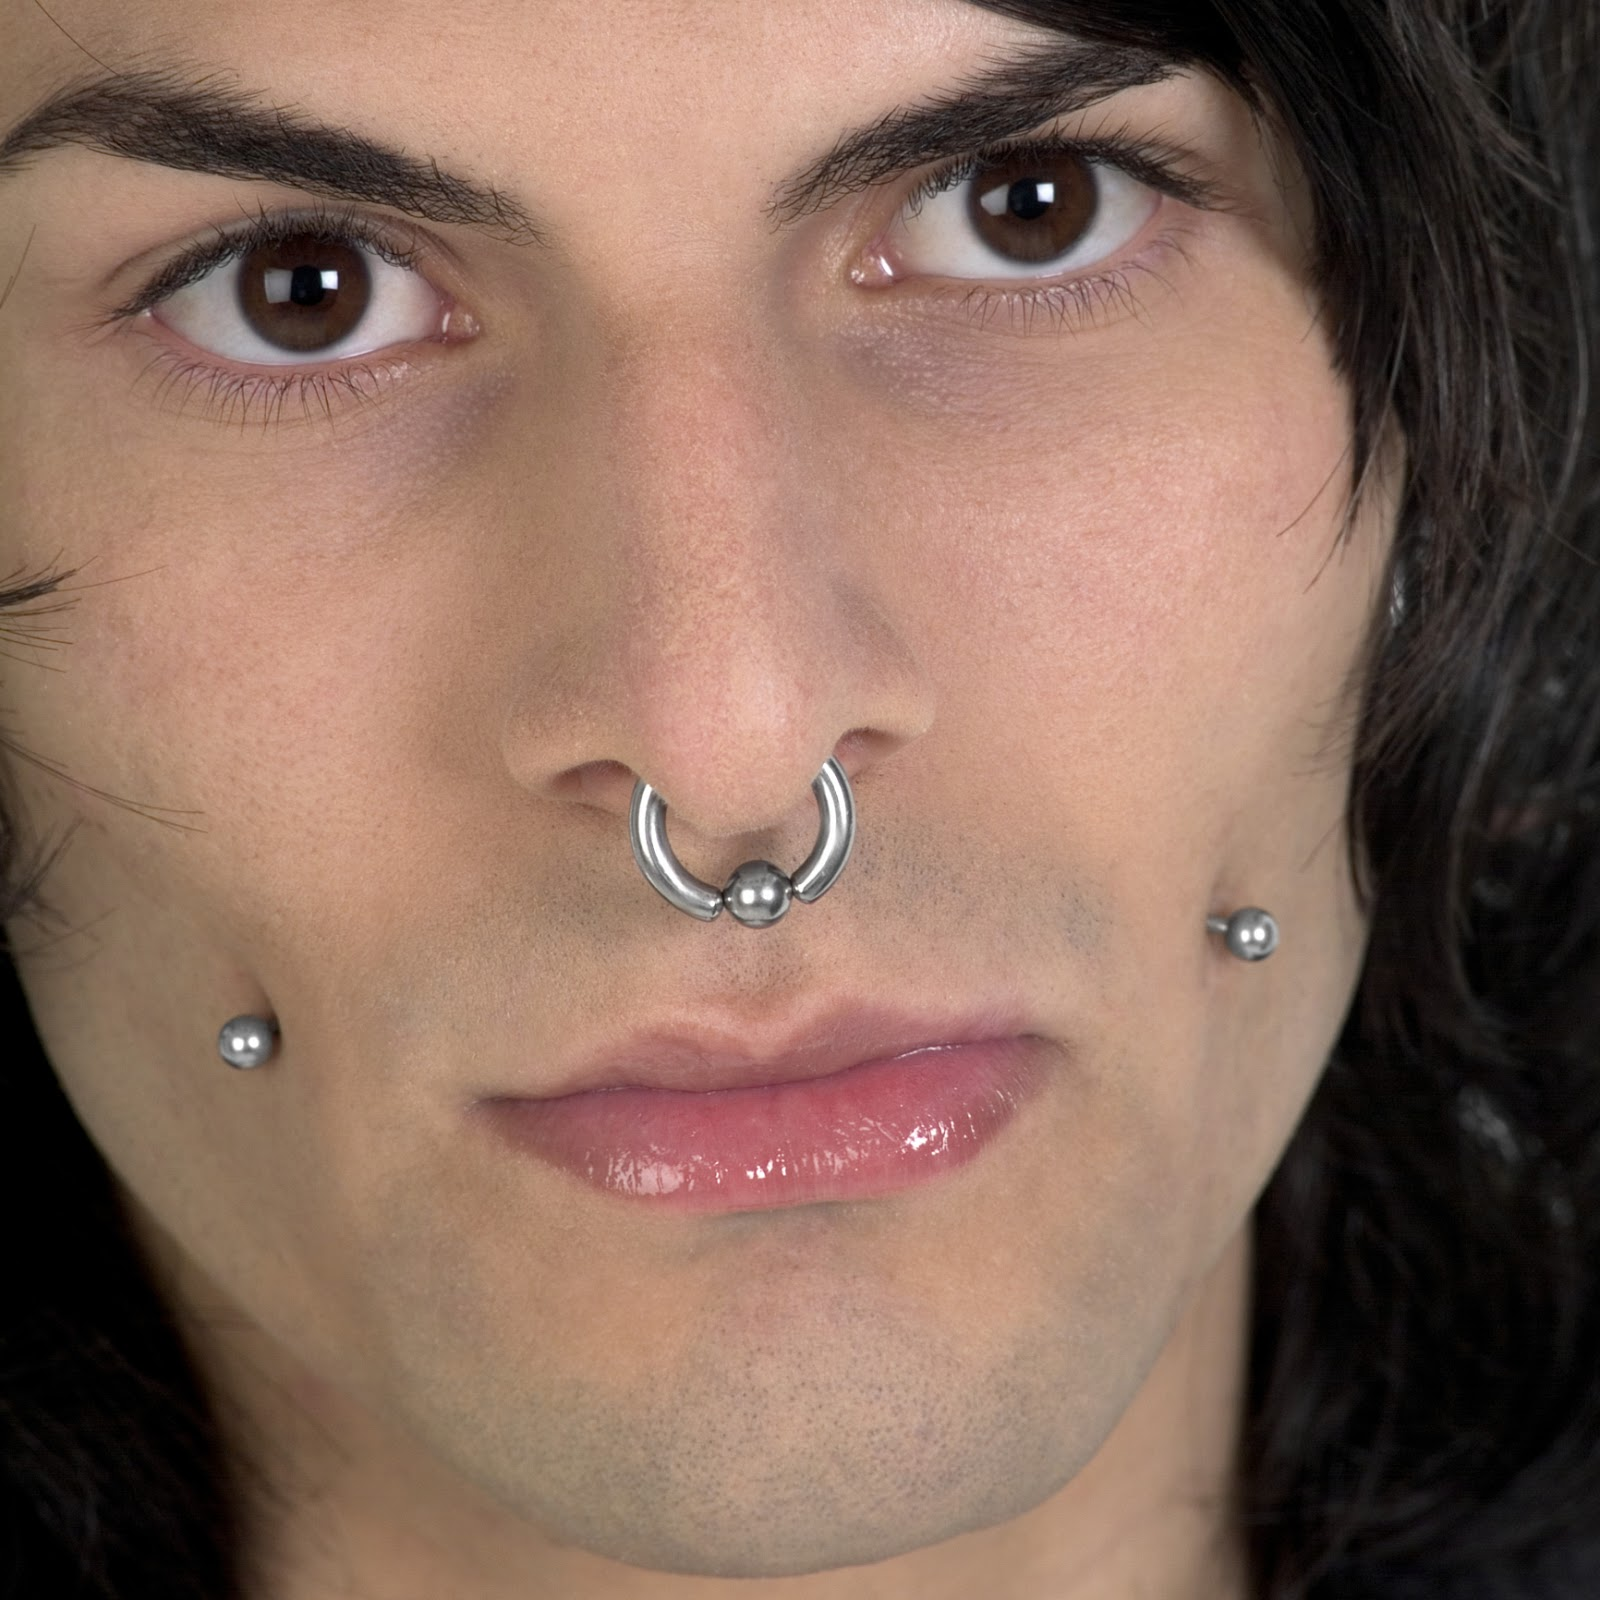 Body piercing pictures gallery